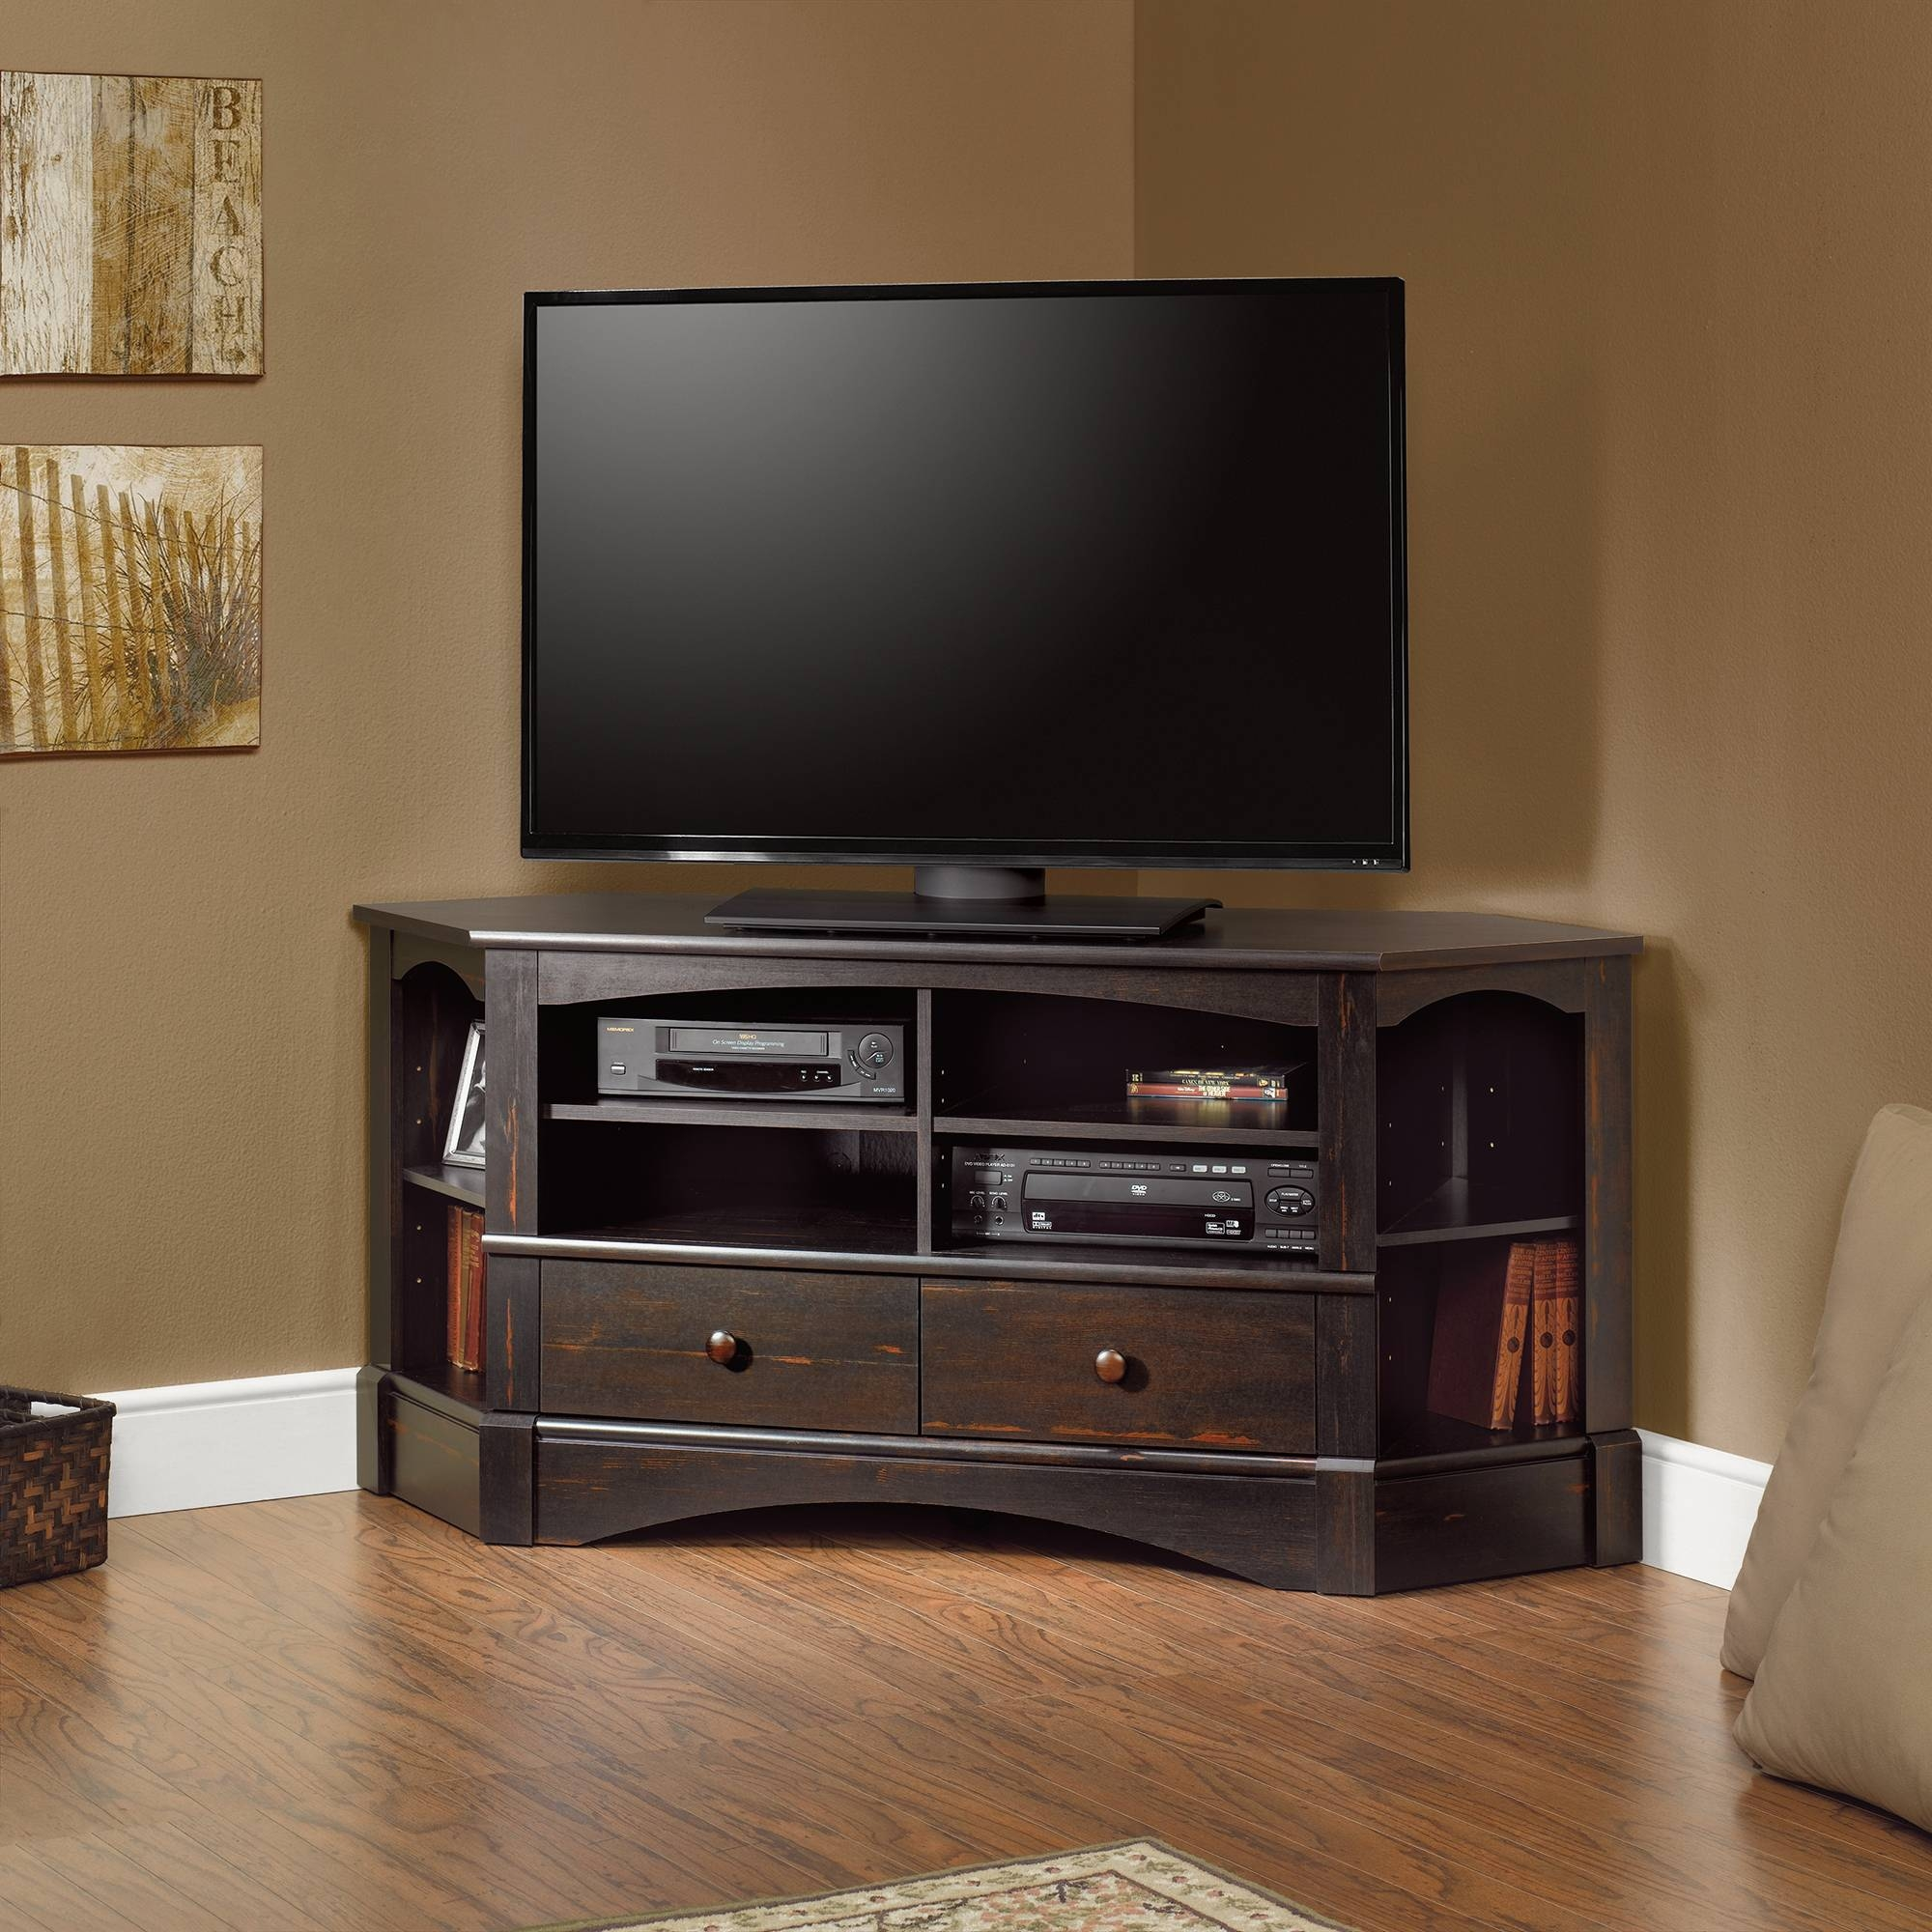 Harbor View | Corner Entertainment Credenza | 402902 | Sauder with regard to 61 Inch Tv Stands (Image 2 of 15)